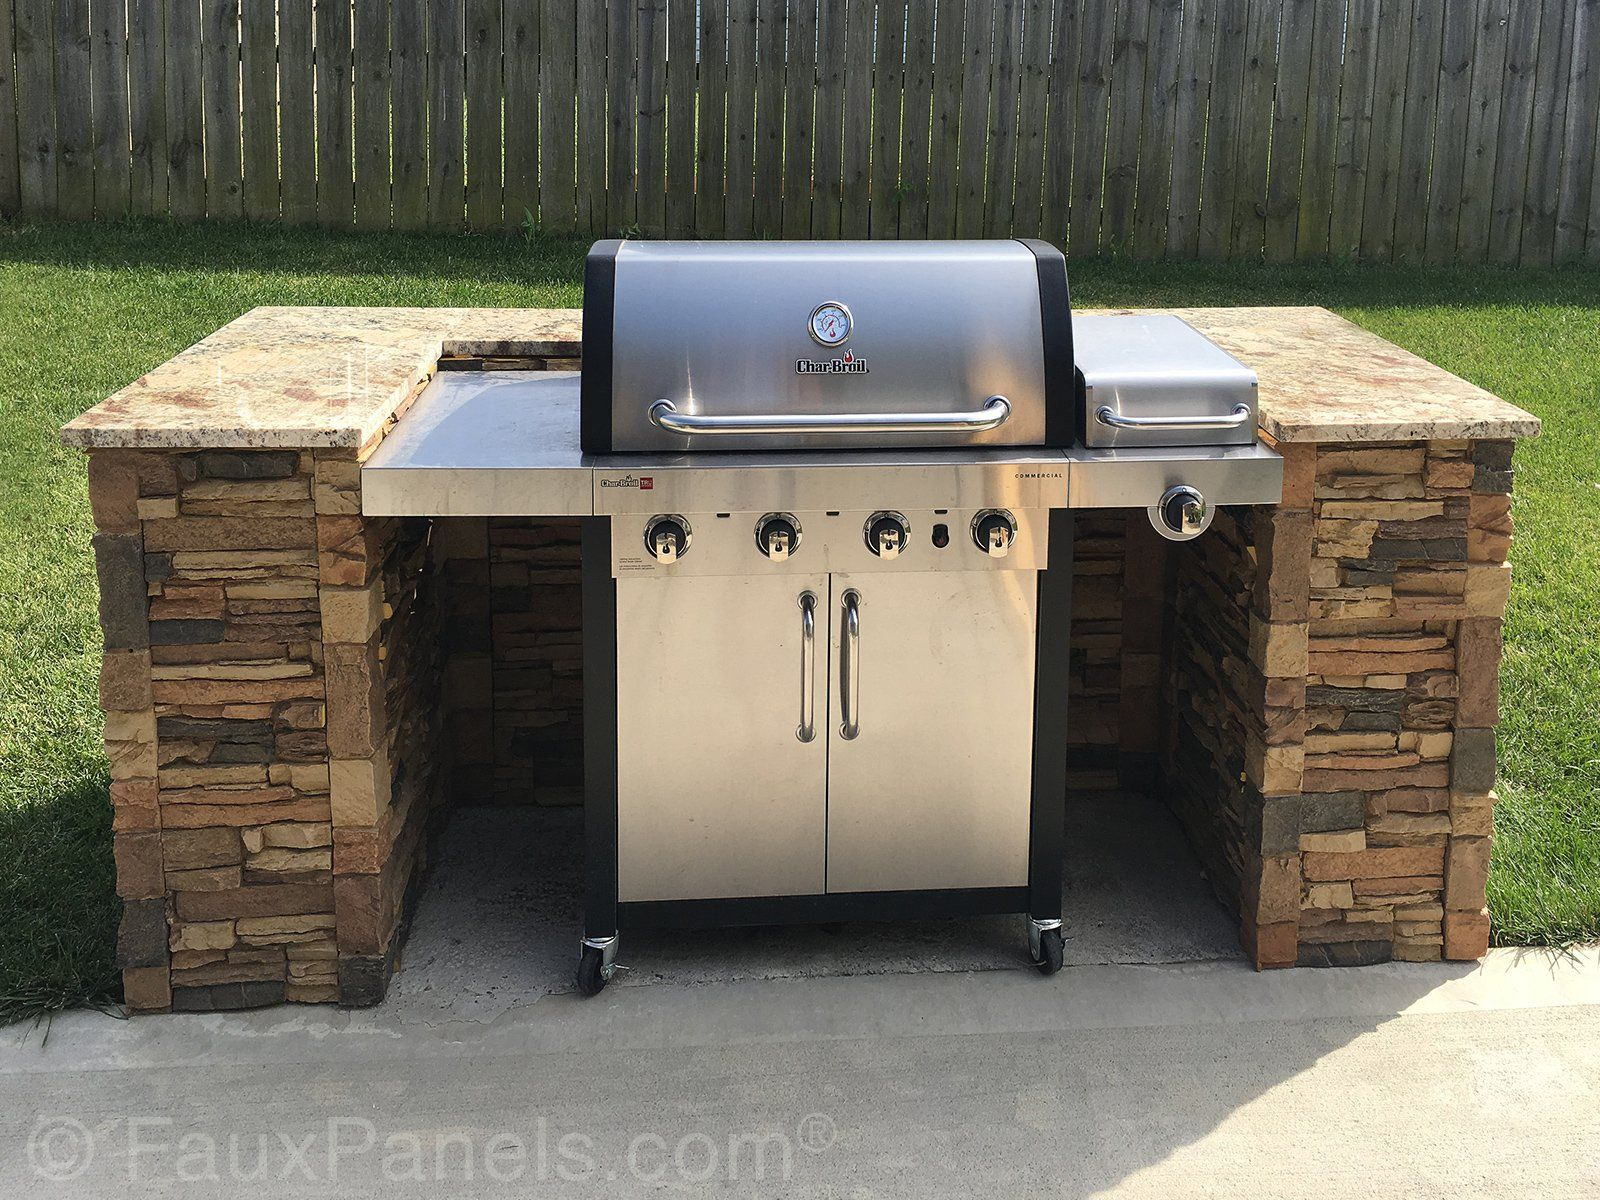 Commercial Home Renovation Ideas Stone Siding Photos Faux Stone Panels For Fancying Up The Grill Outdoor Remodel Outdoor Grill Station Outdoor Grill Area